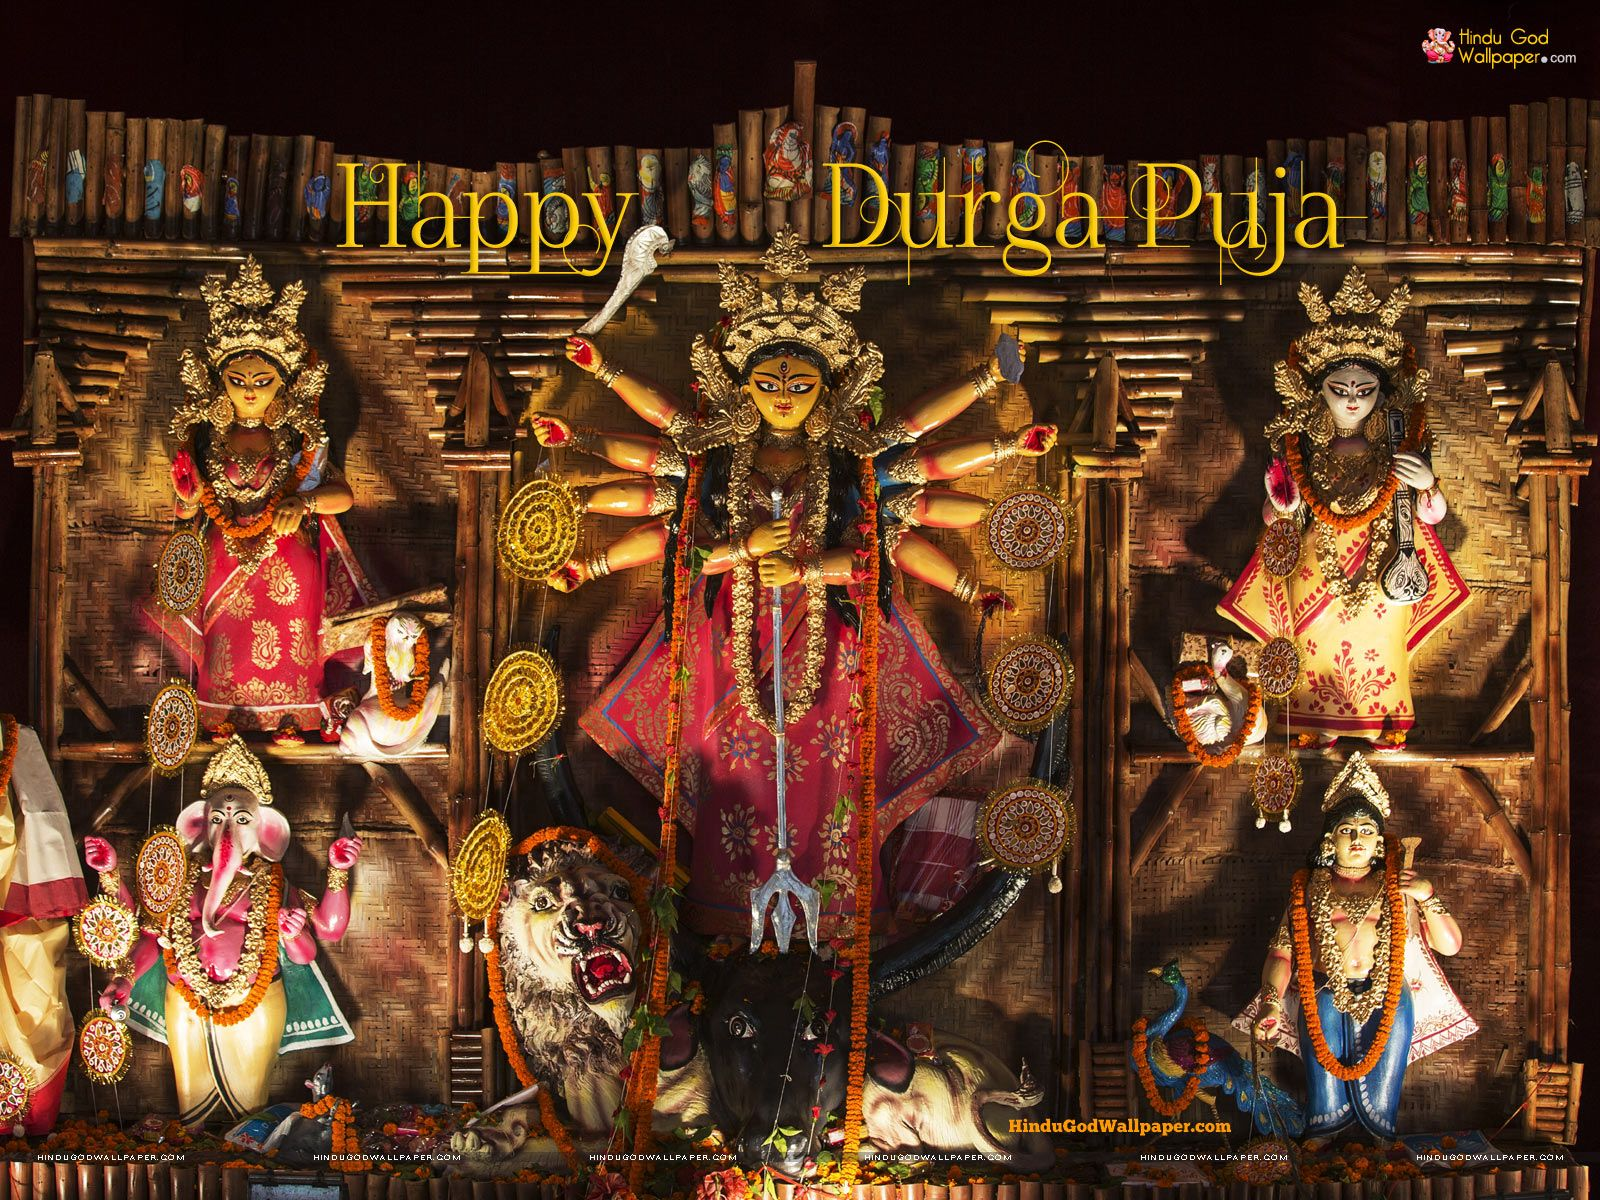 Durga puja wallpaper full size hd free download durga puja durga puja wallpaper full size hd free download thecheapjerseys Images